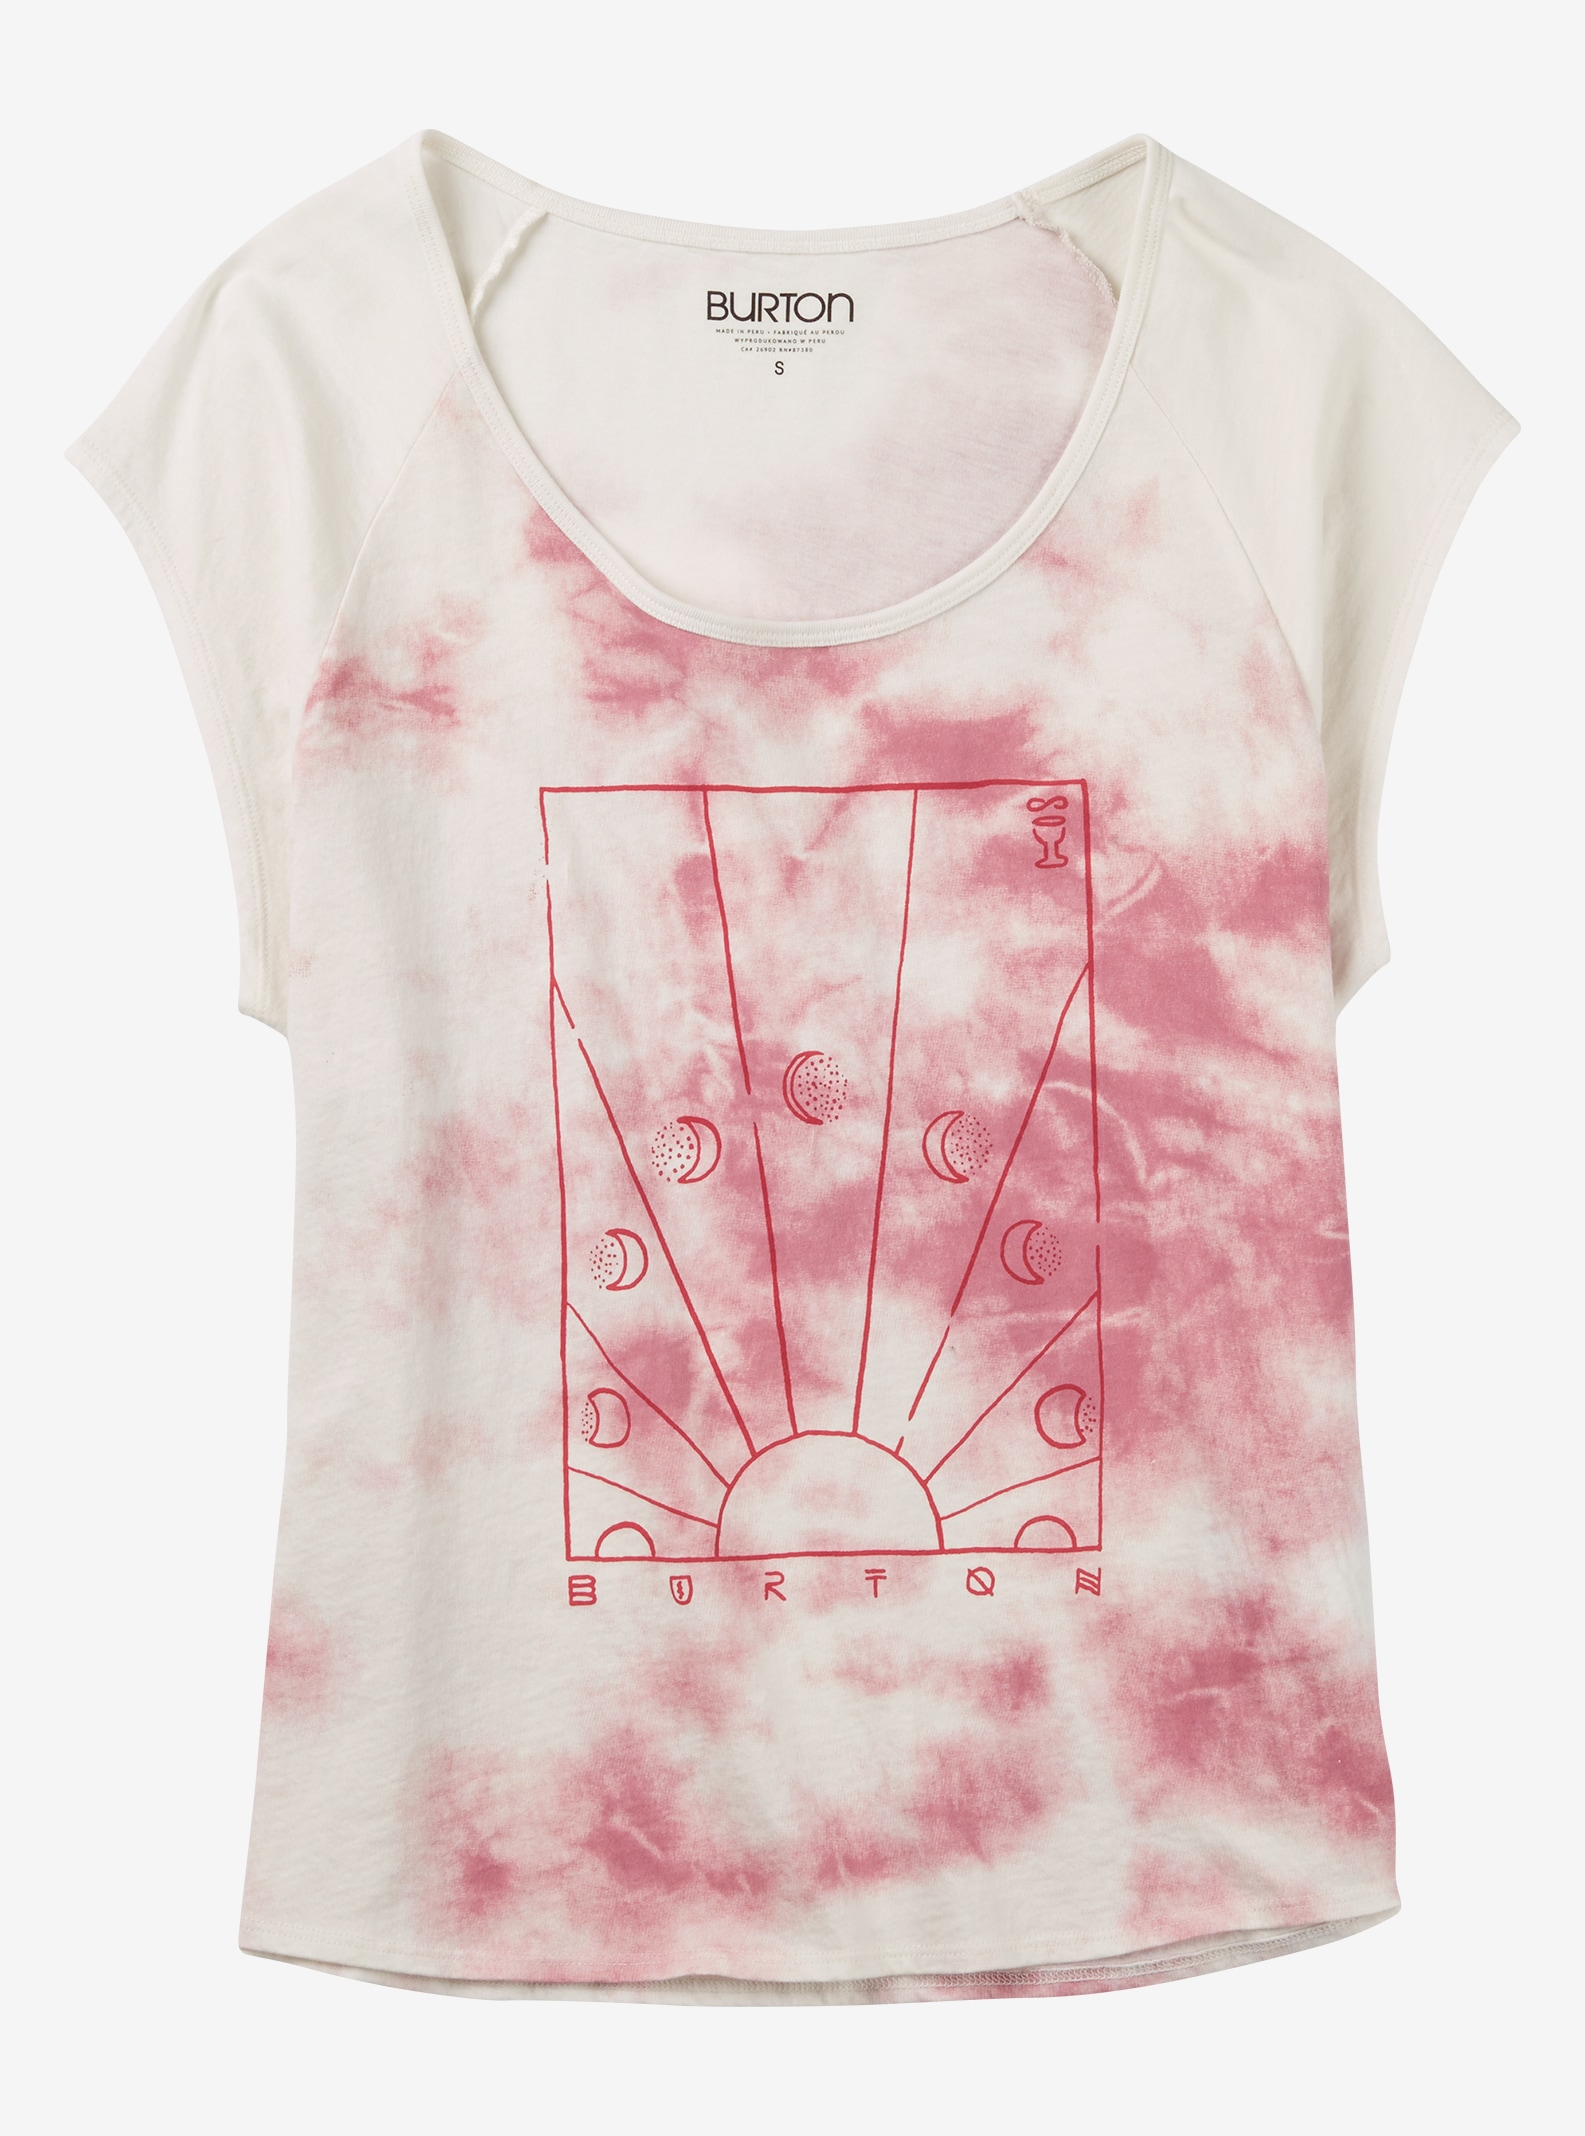 Burton Dawn T-Shirt angezeigt in Berry Tie Dye